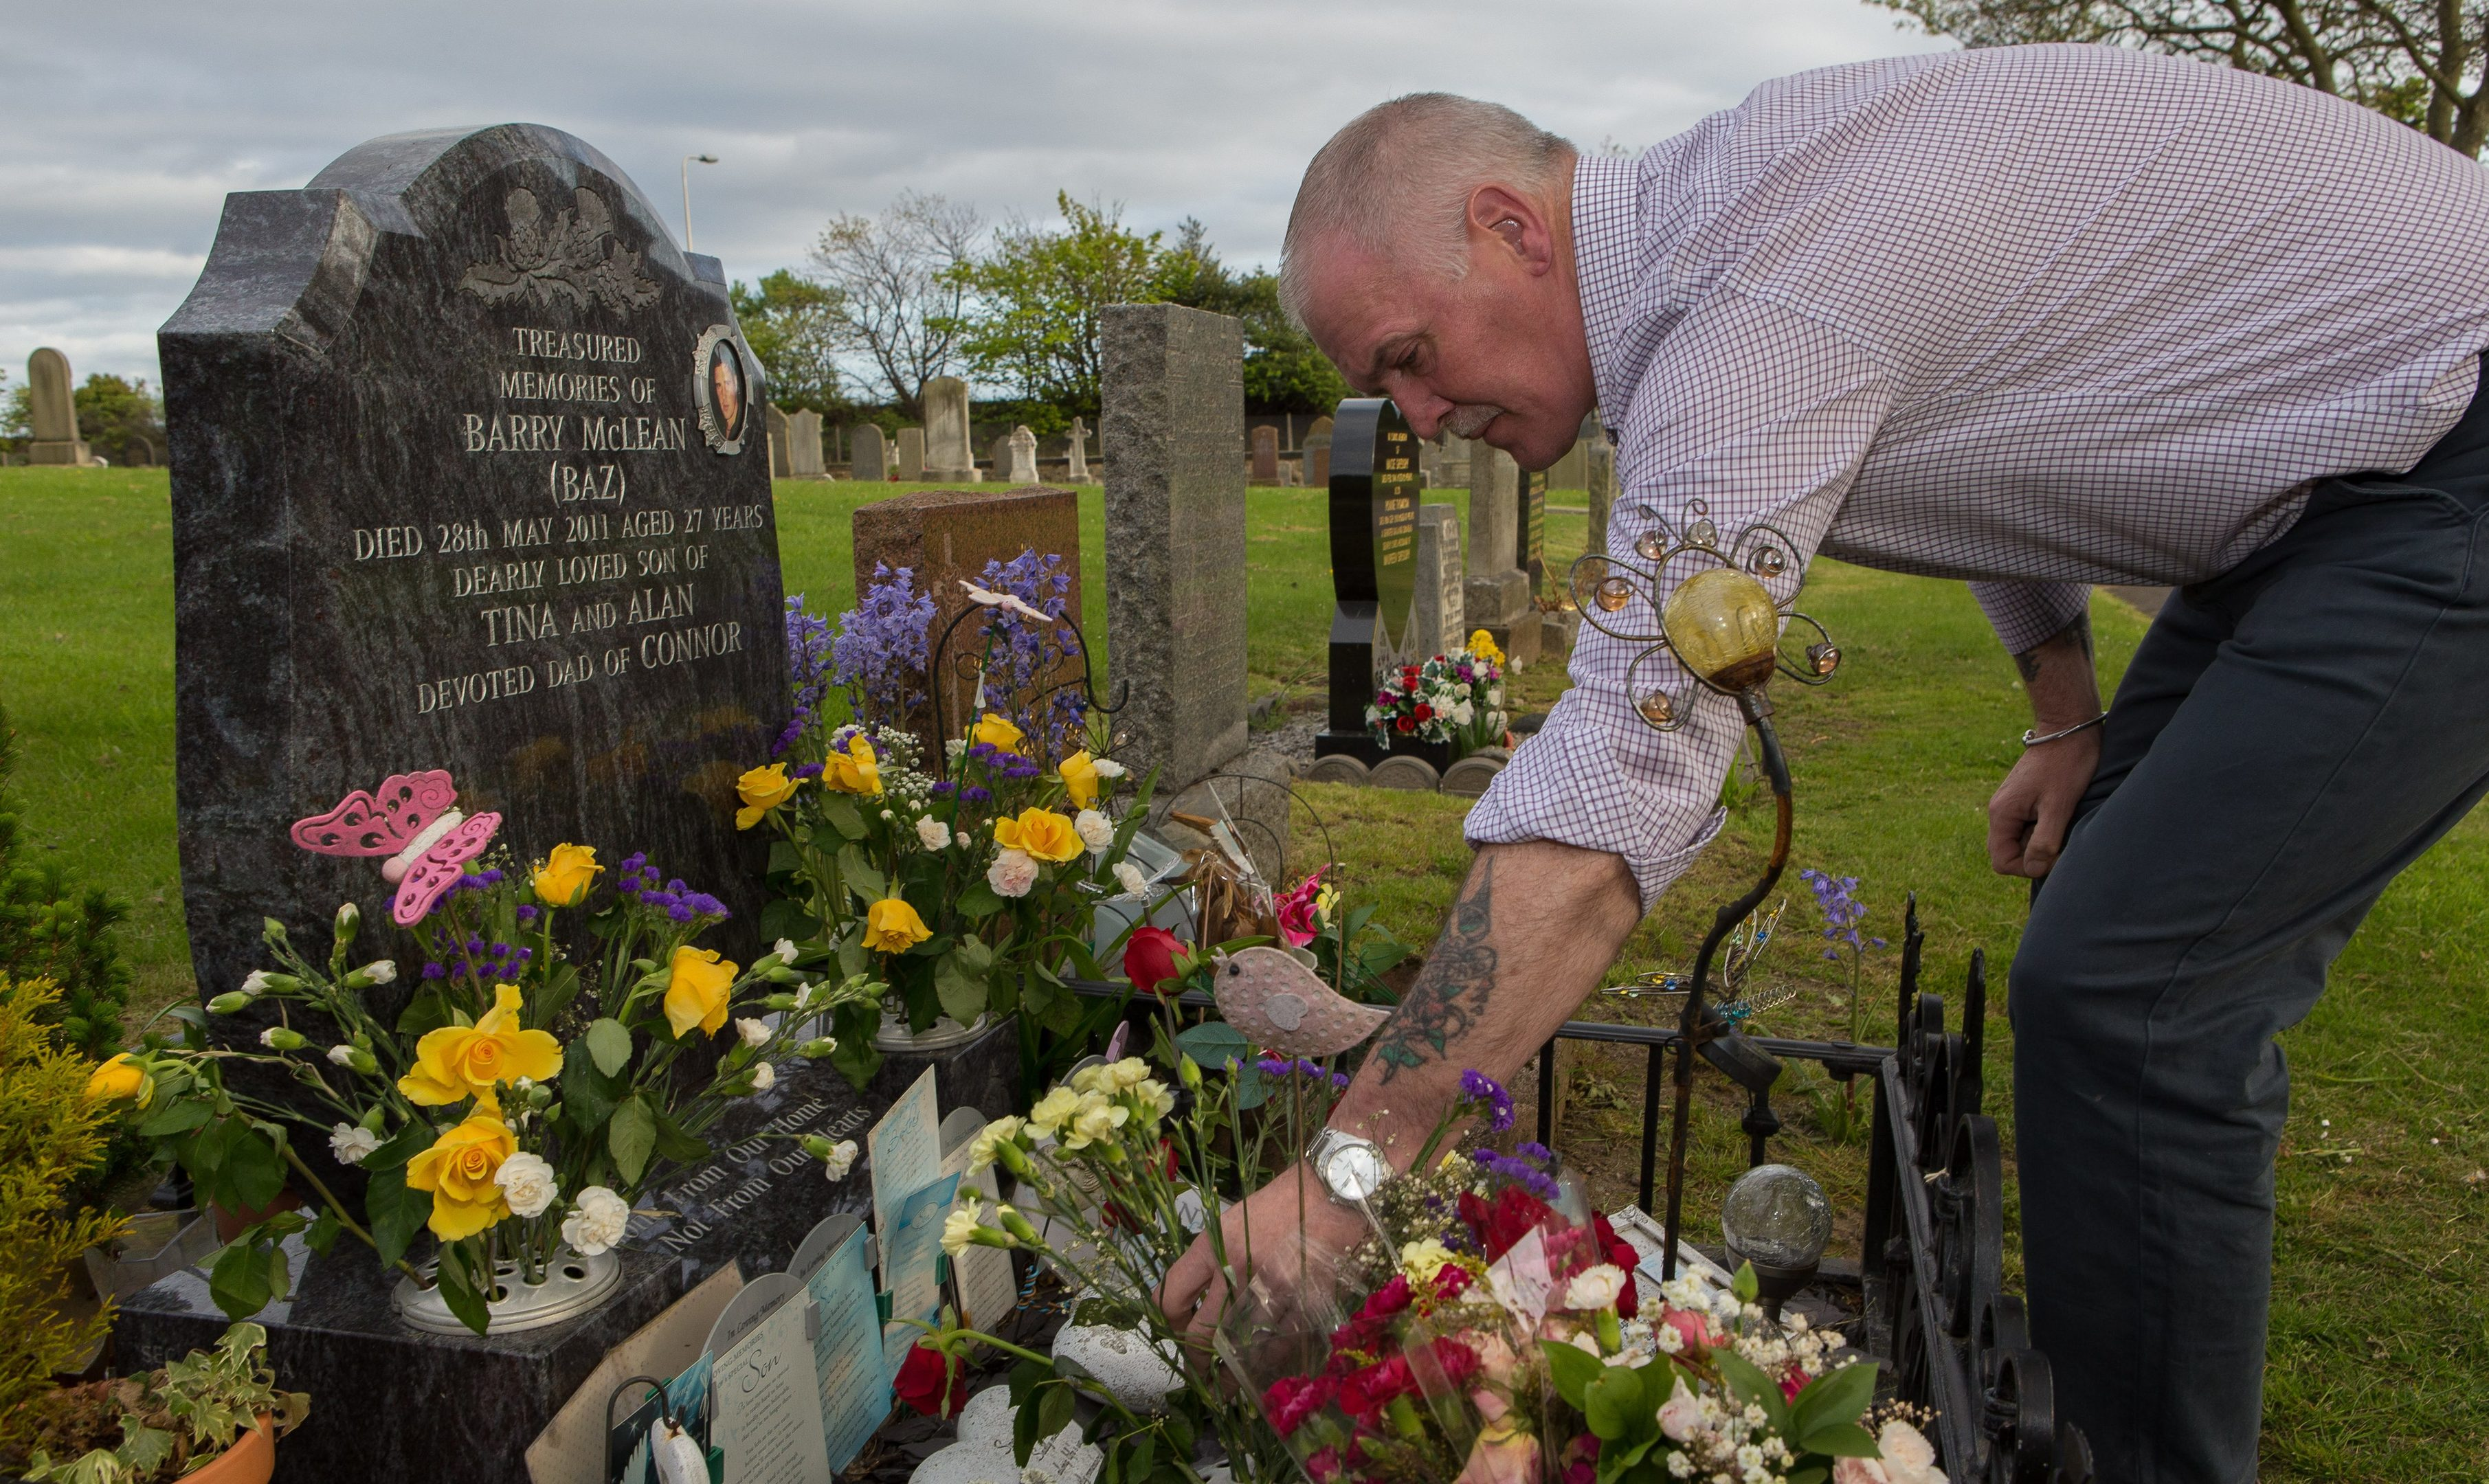 Alan McLean tends the grave of his son Barry McLean who died after a knife attack on May 28, 2011.